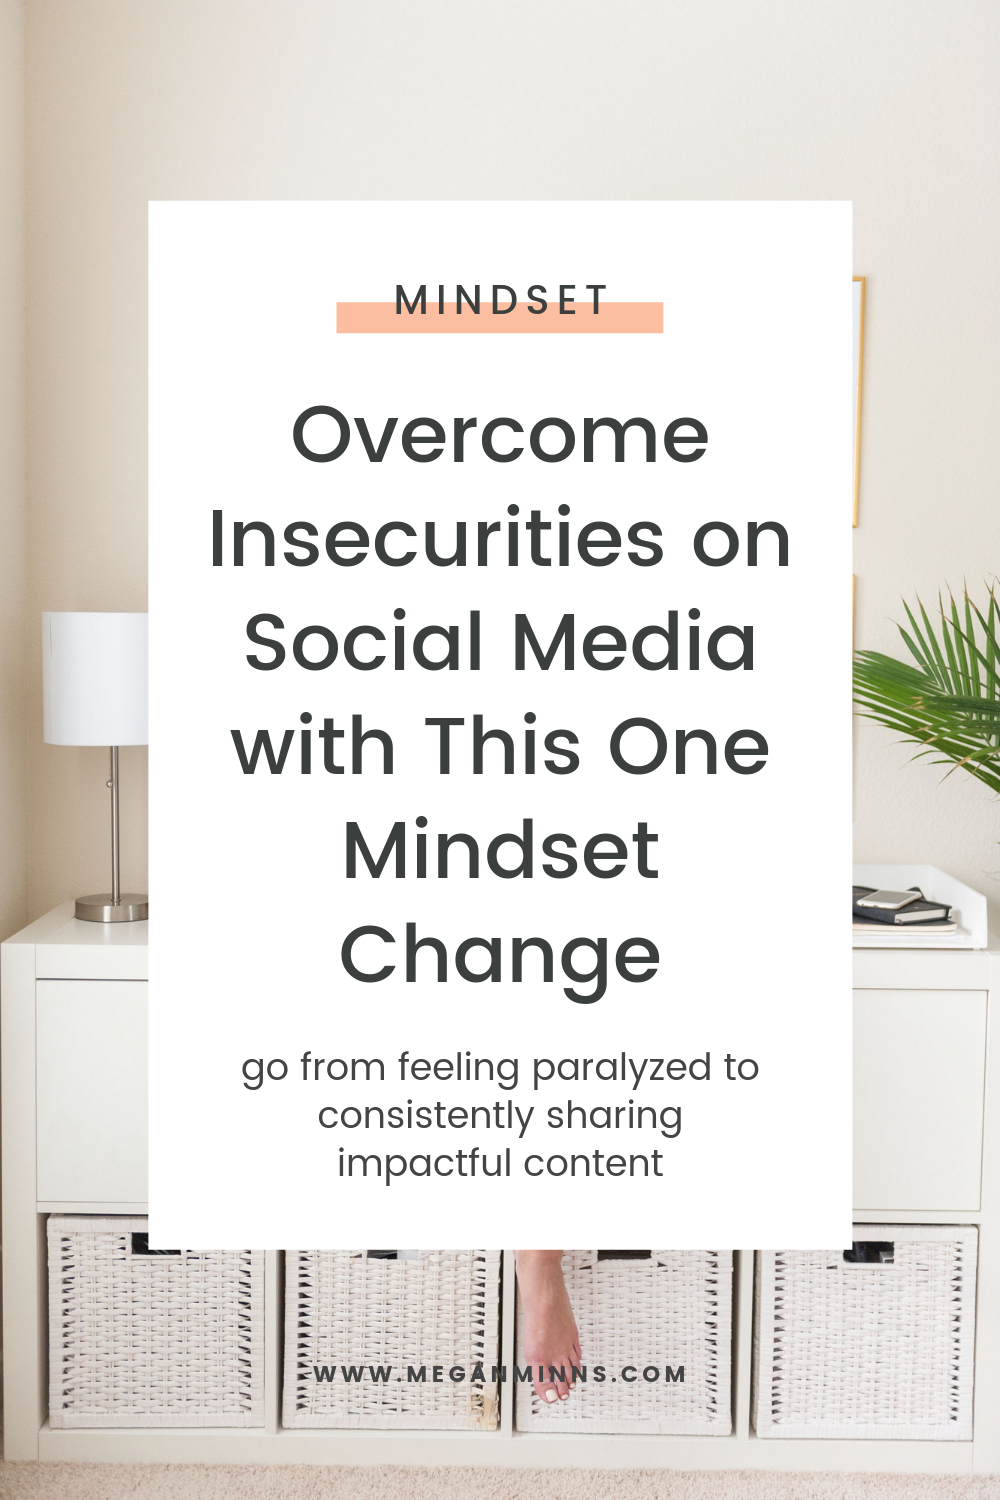 Creating and sharing content on any platform can be terrifying and bring doubts and insecurity to even the most confident people. That fear and insecurity held me back in business and in my life for so long, until I made this one, quick, simple, yet incredibly powerful mindset change.  TRANSFORM YOUR MINDSET HERE ✨  https://meganminns.com/blog/overcome-insecurities-on-social-media-mindset